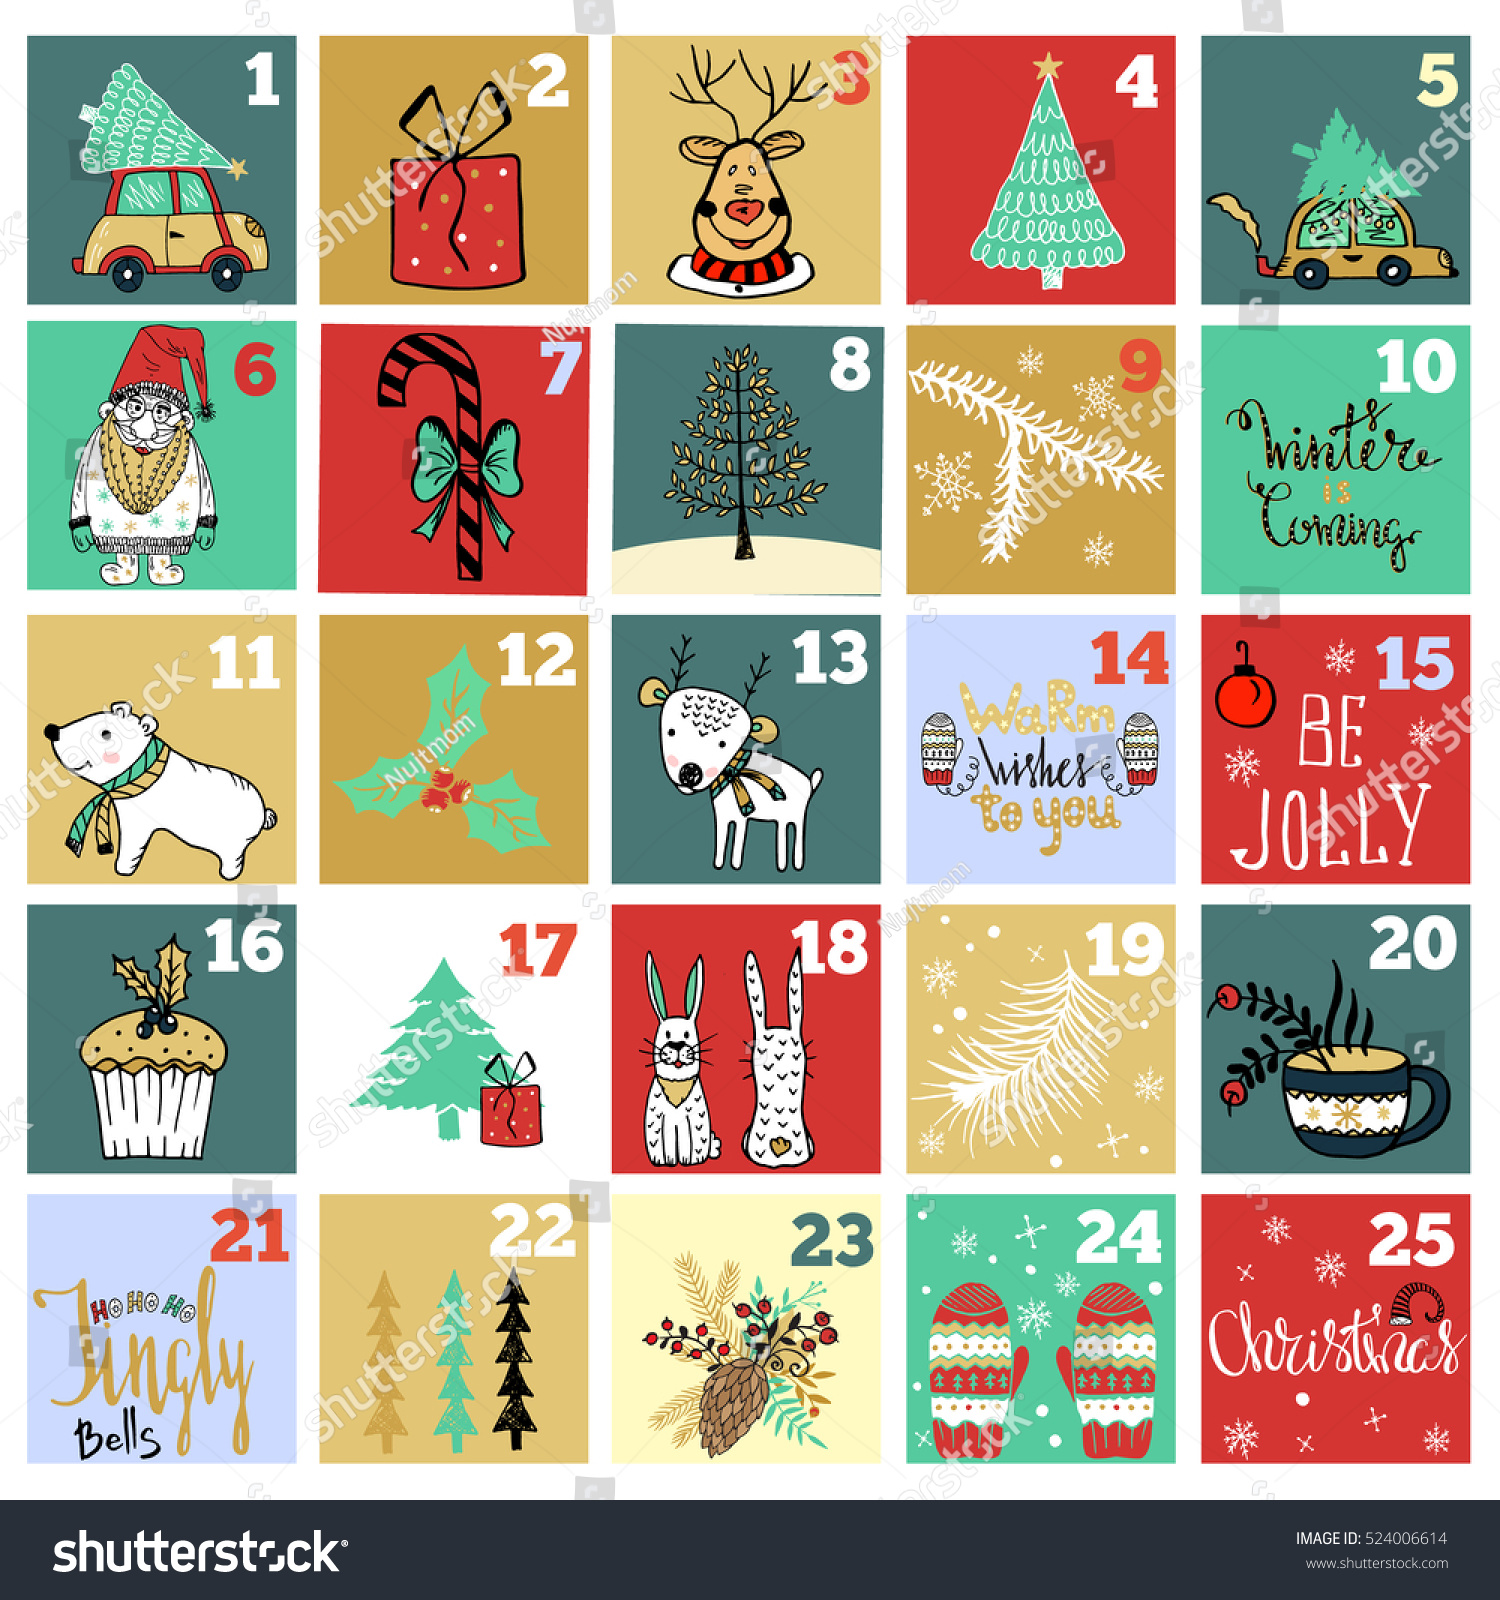 Typography Advent Calendar : Christmas advent calendar hand drawn design stock vector